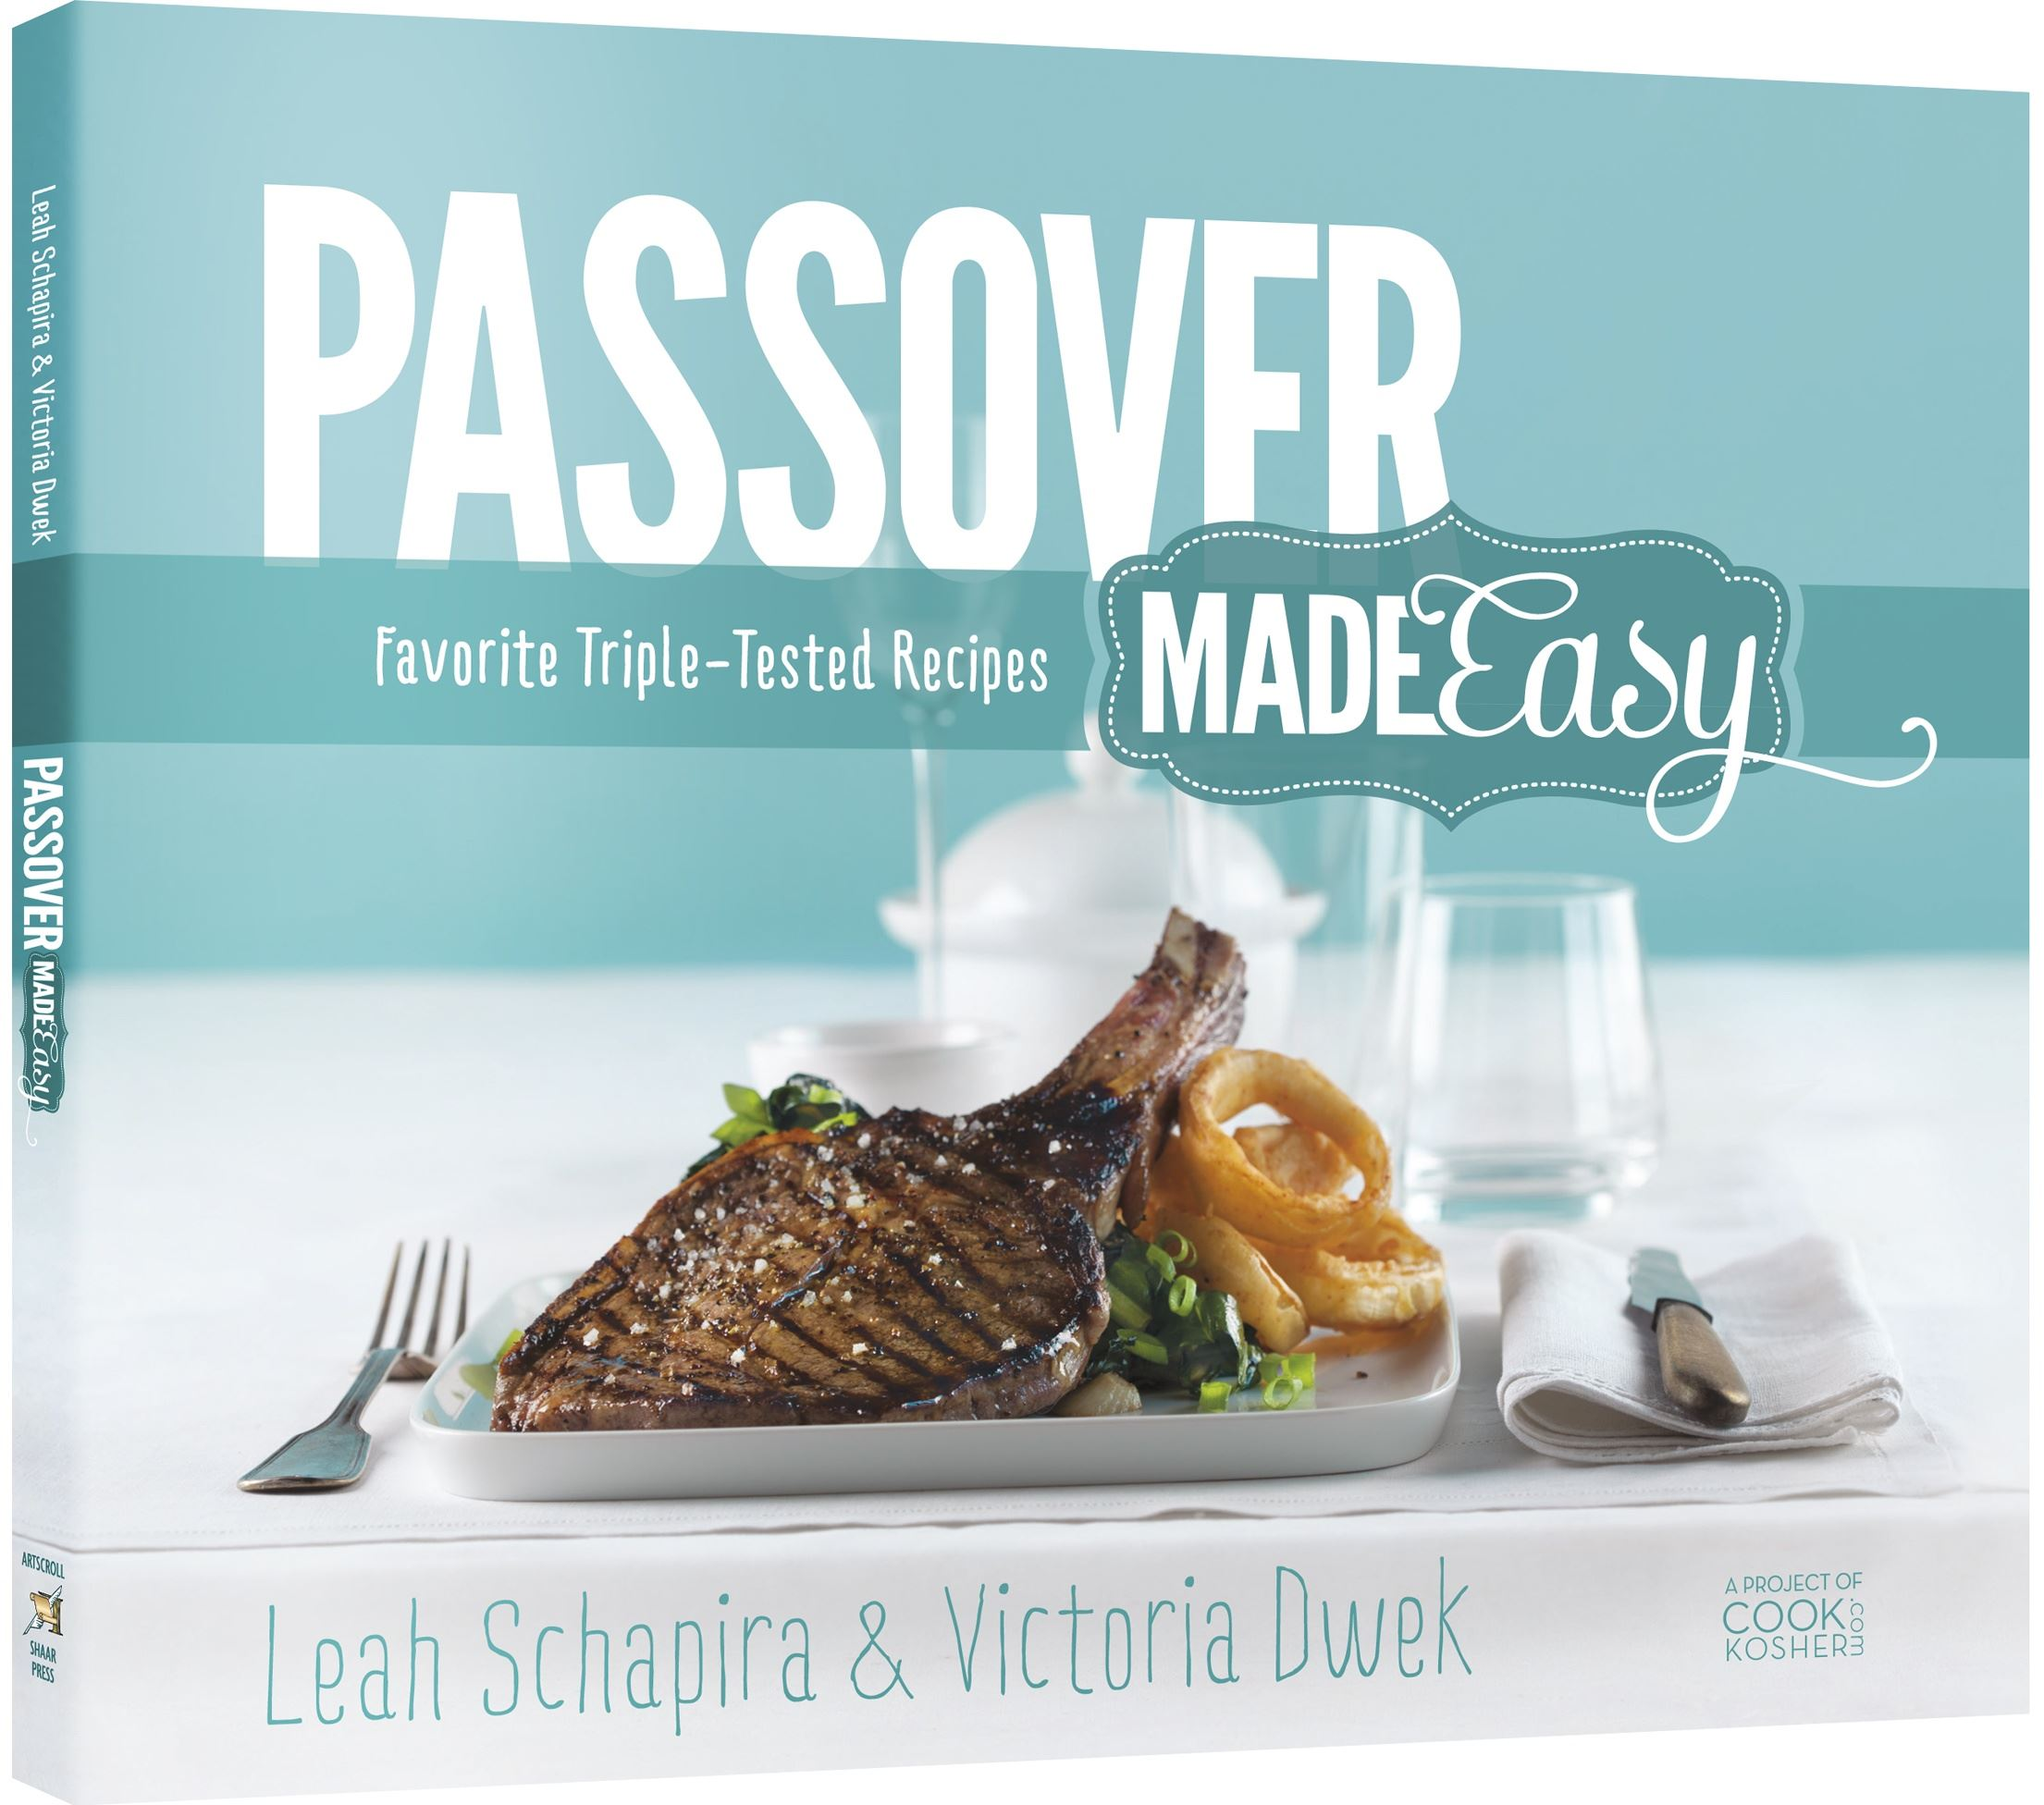 "Passover Made Easy_PB_final.indd ""Passover Made Easy"" by Leah Schapira and Victoria Dwek."